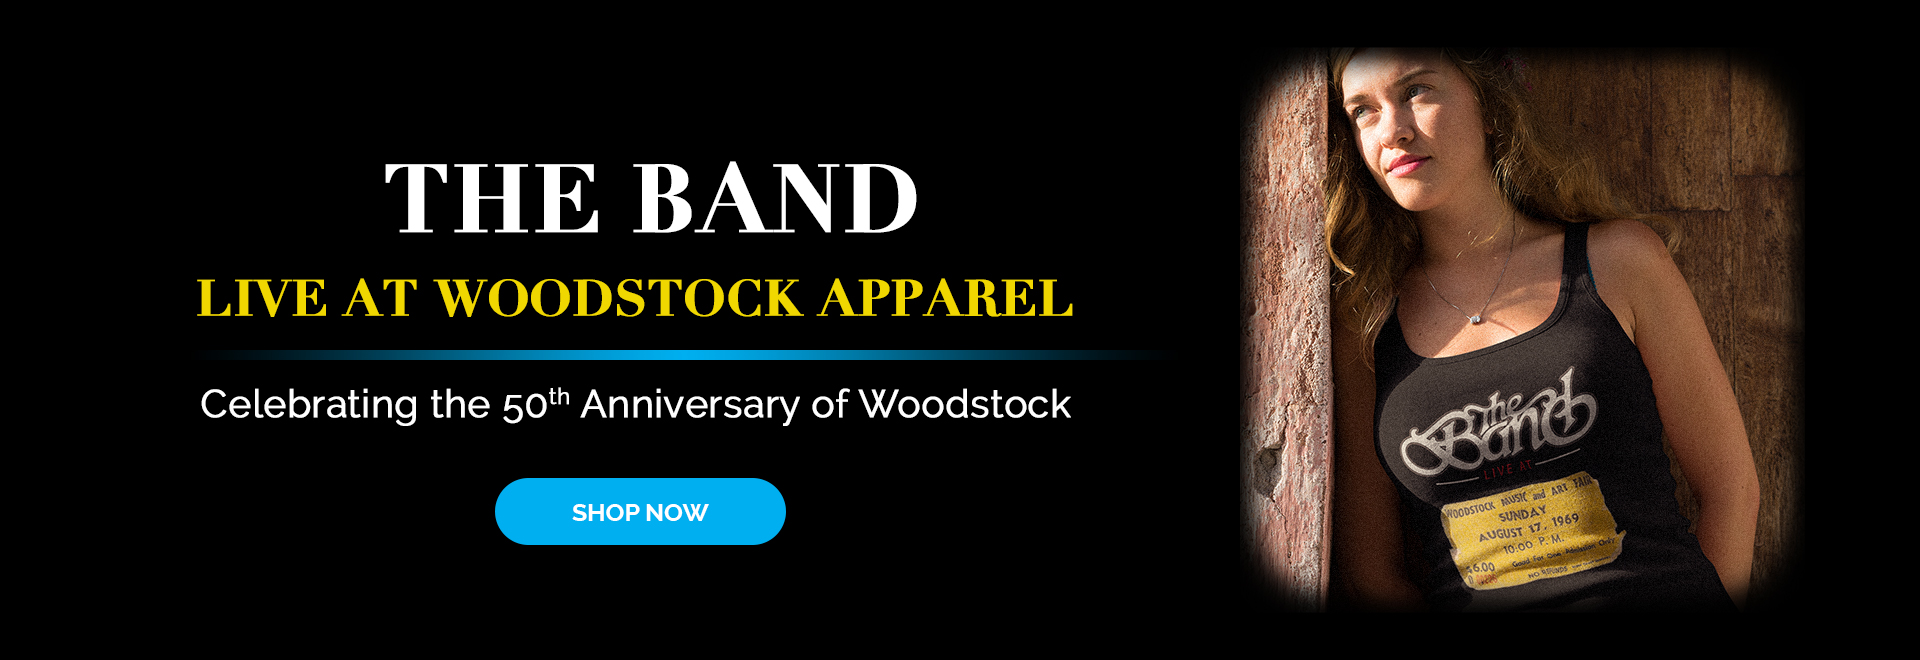 Live at Woodstock Apparel